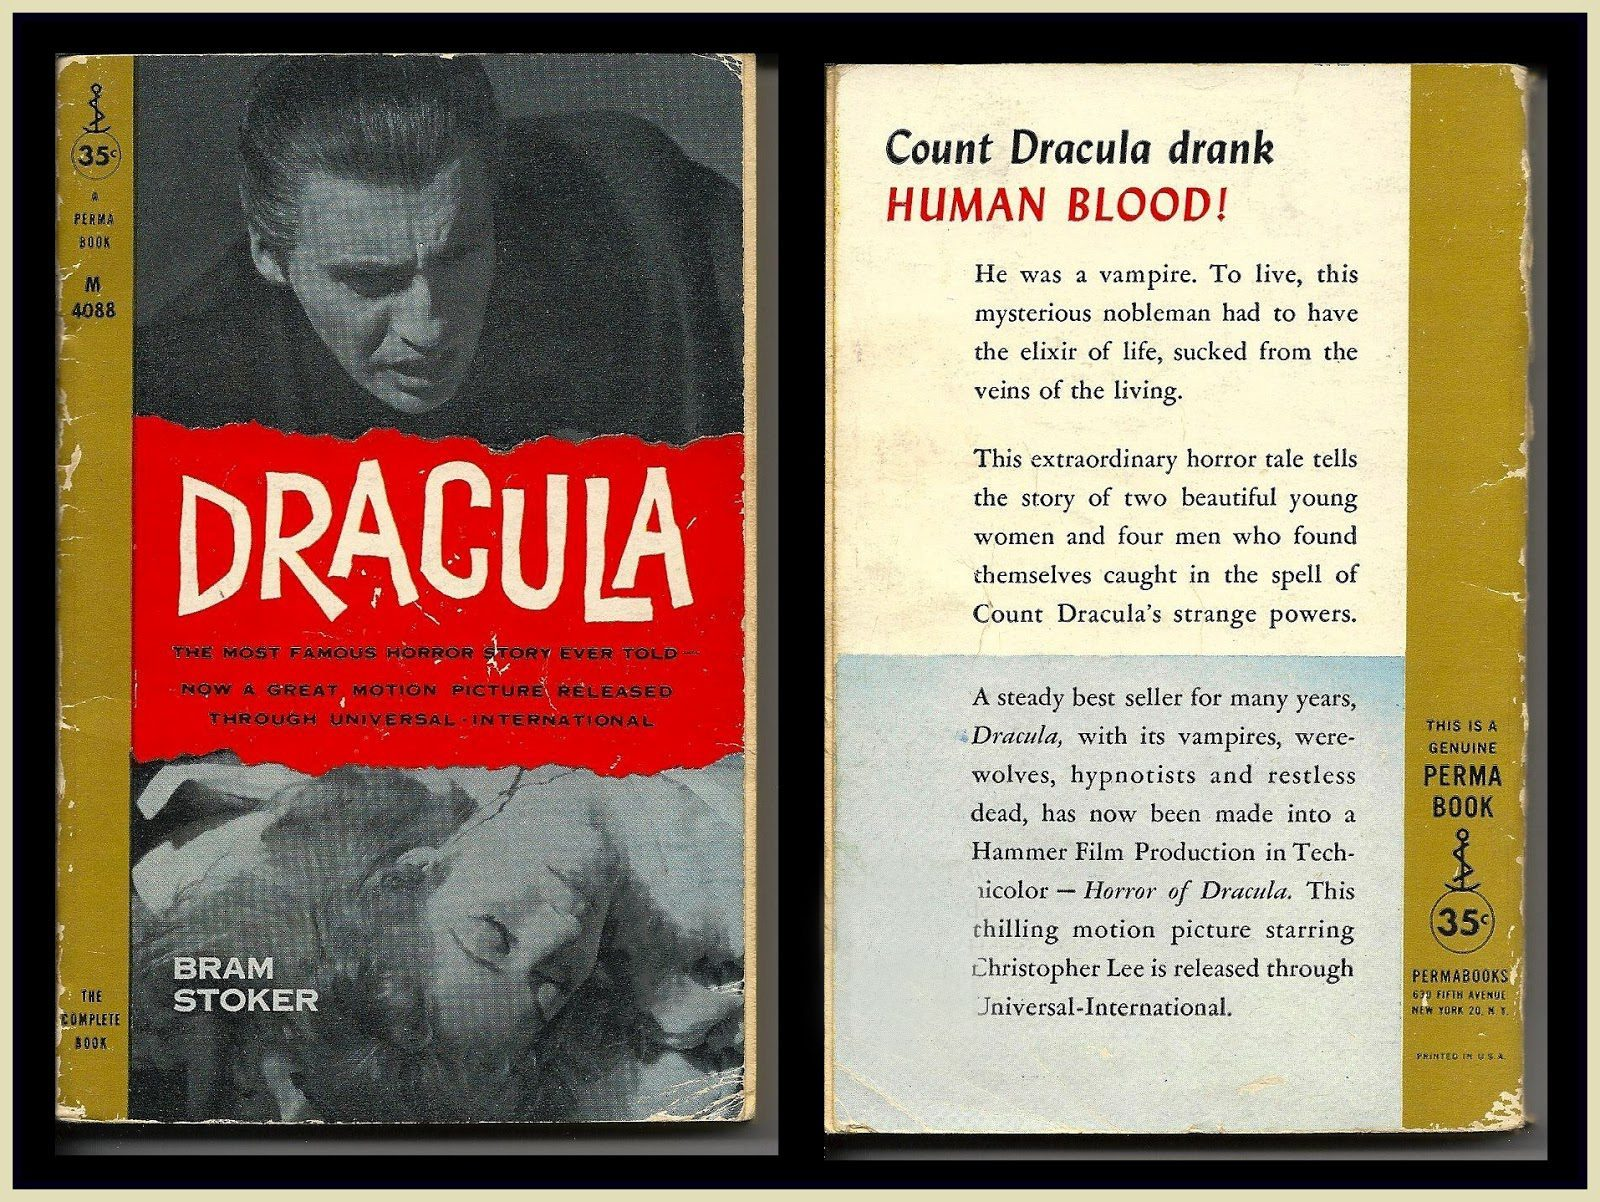 American Dracula movie tie-in version of Bram Stoker's 1897 novel